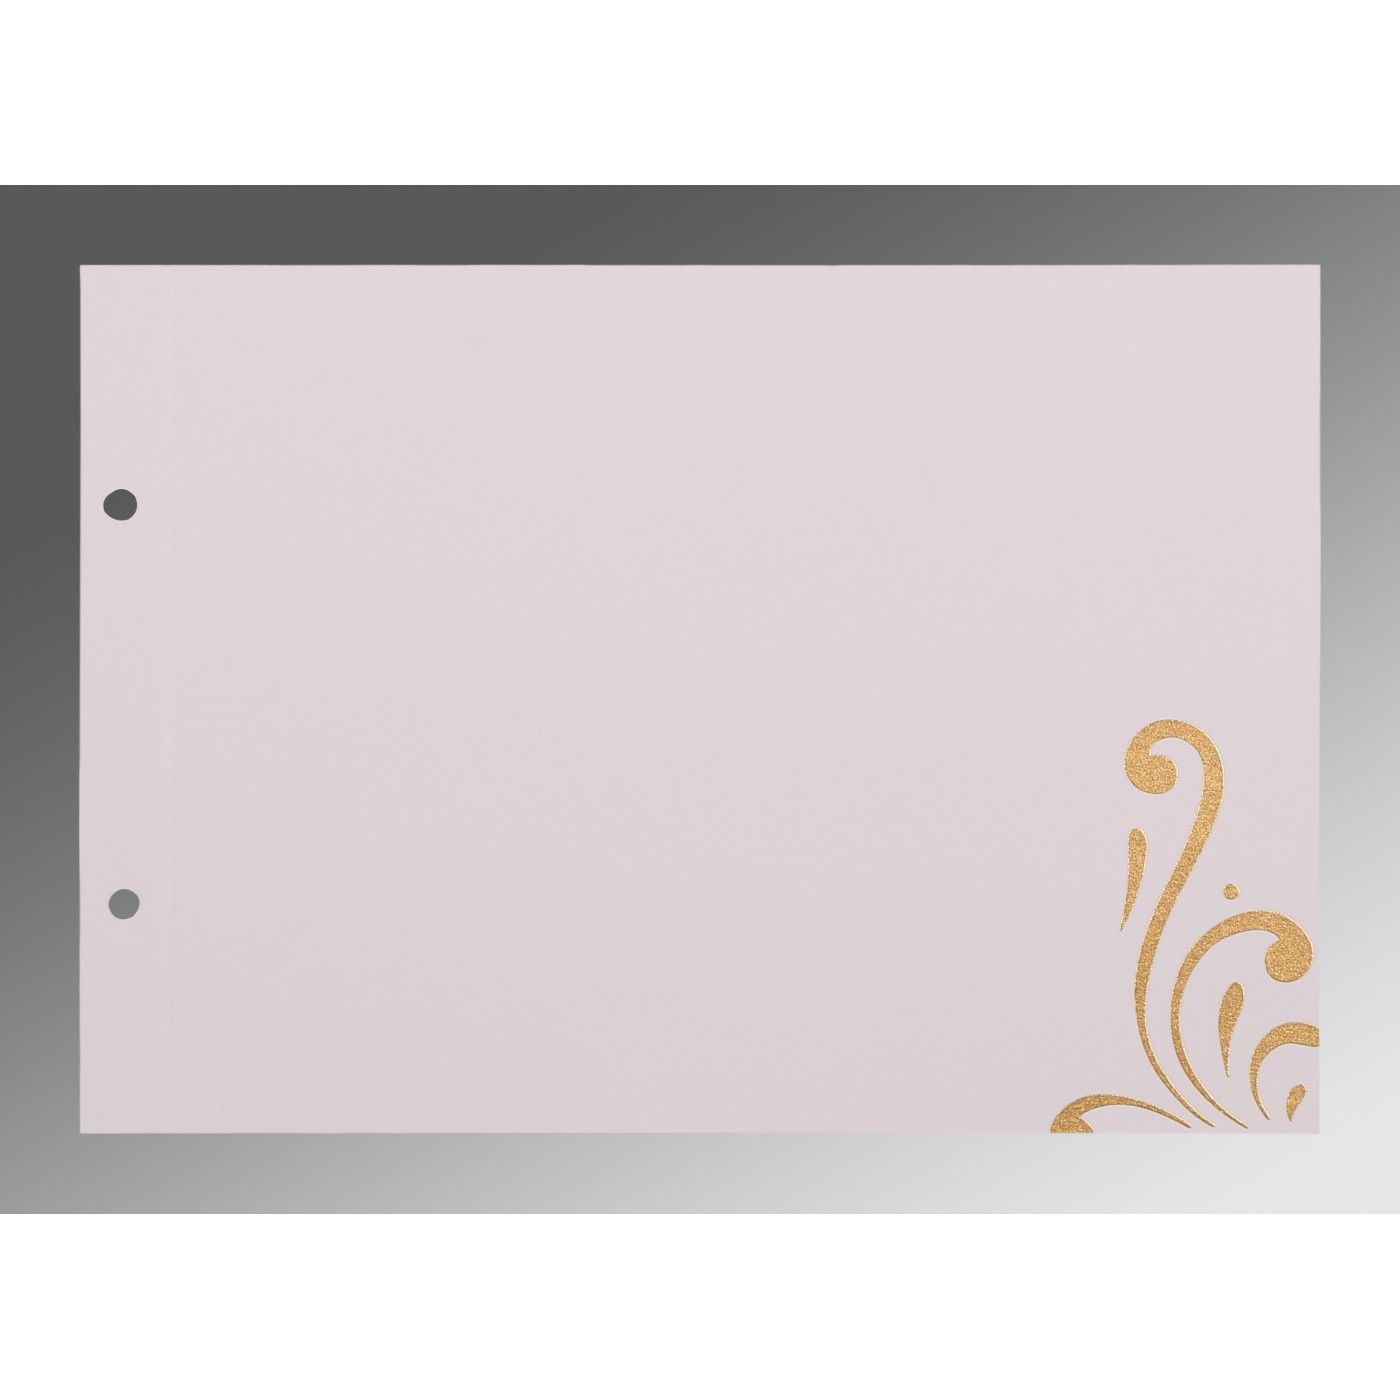 CHAMOISEE SHIMMERY SCREEN PRINTED WEDDING CARD : CRU-8223L - IndianWeddingCards